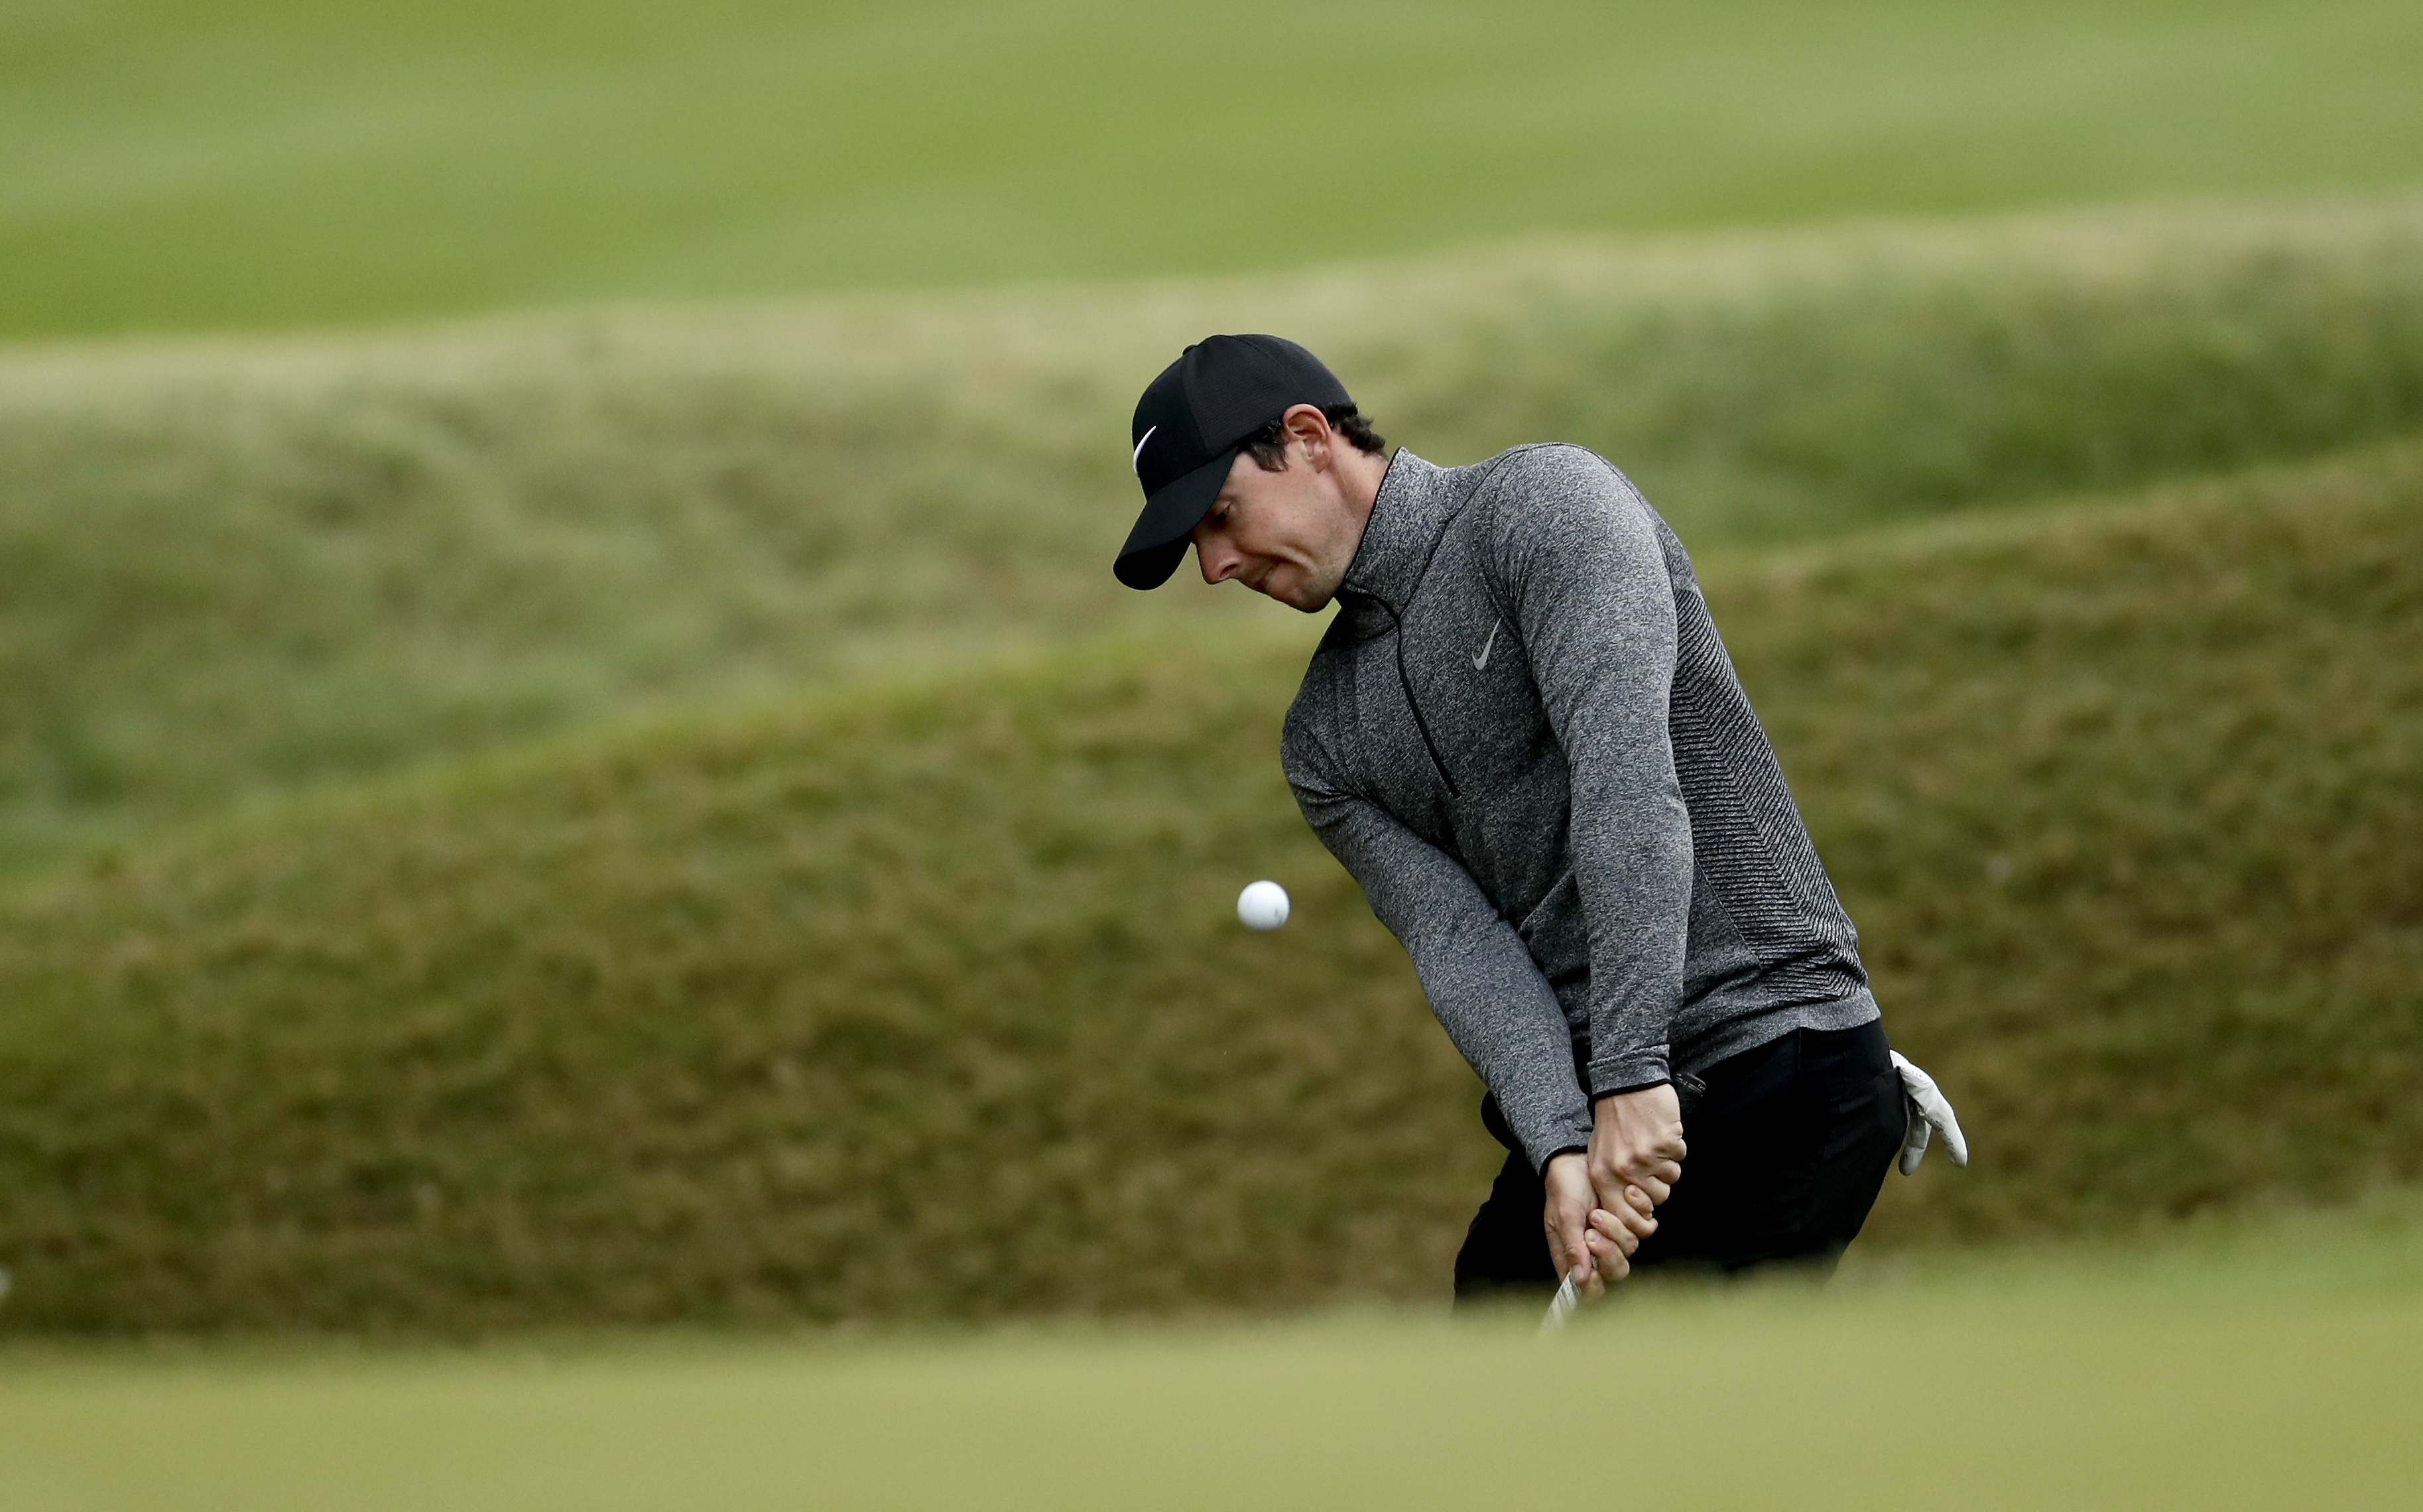 Rory McIlroy, of Northern Ireland, chips onto the sixth green during the round of 16 play against Dustin Johnson at the Dell Match Play Championship golf tournament at Austin County Club Saturday, March 26, 2016, in Austin, Texas. (AP Photo/Charlie Riedel